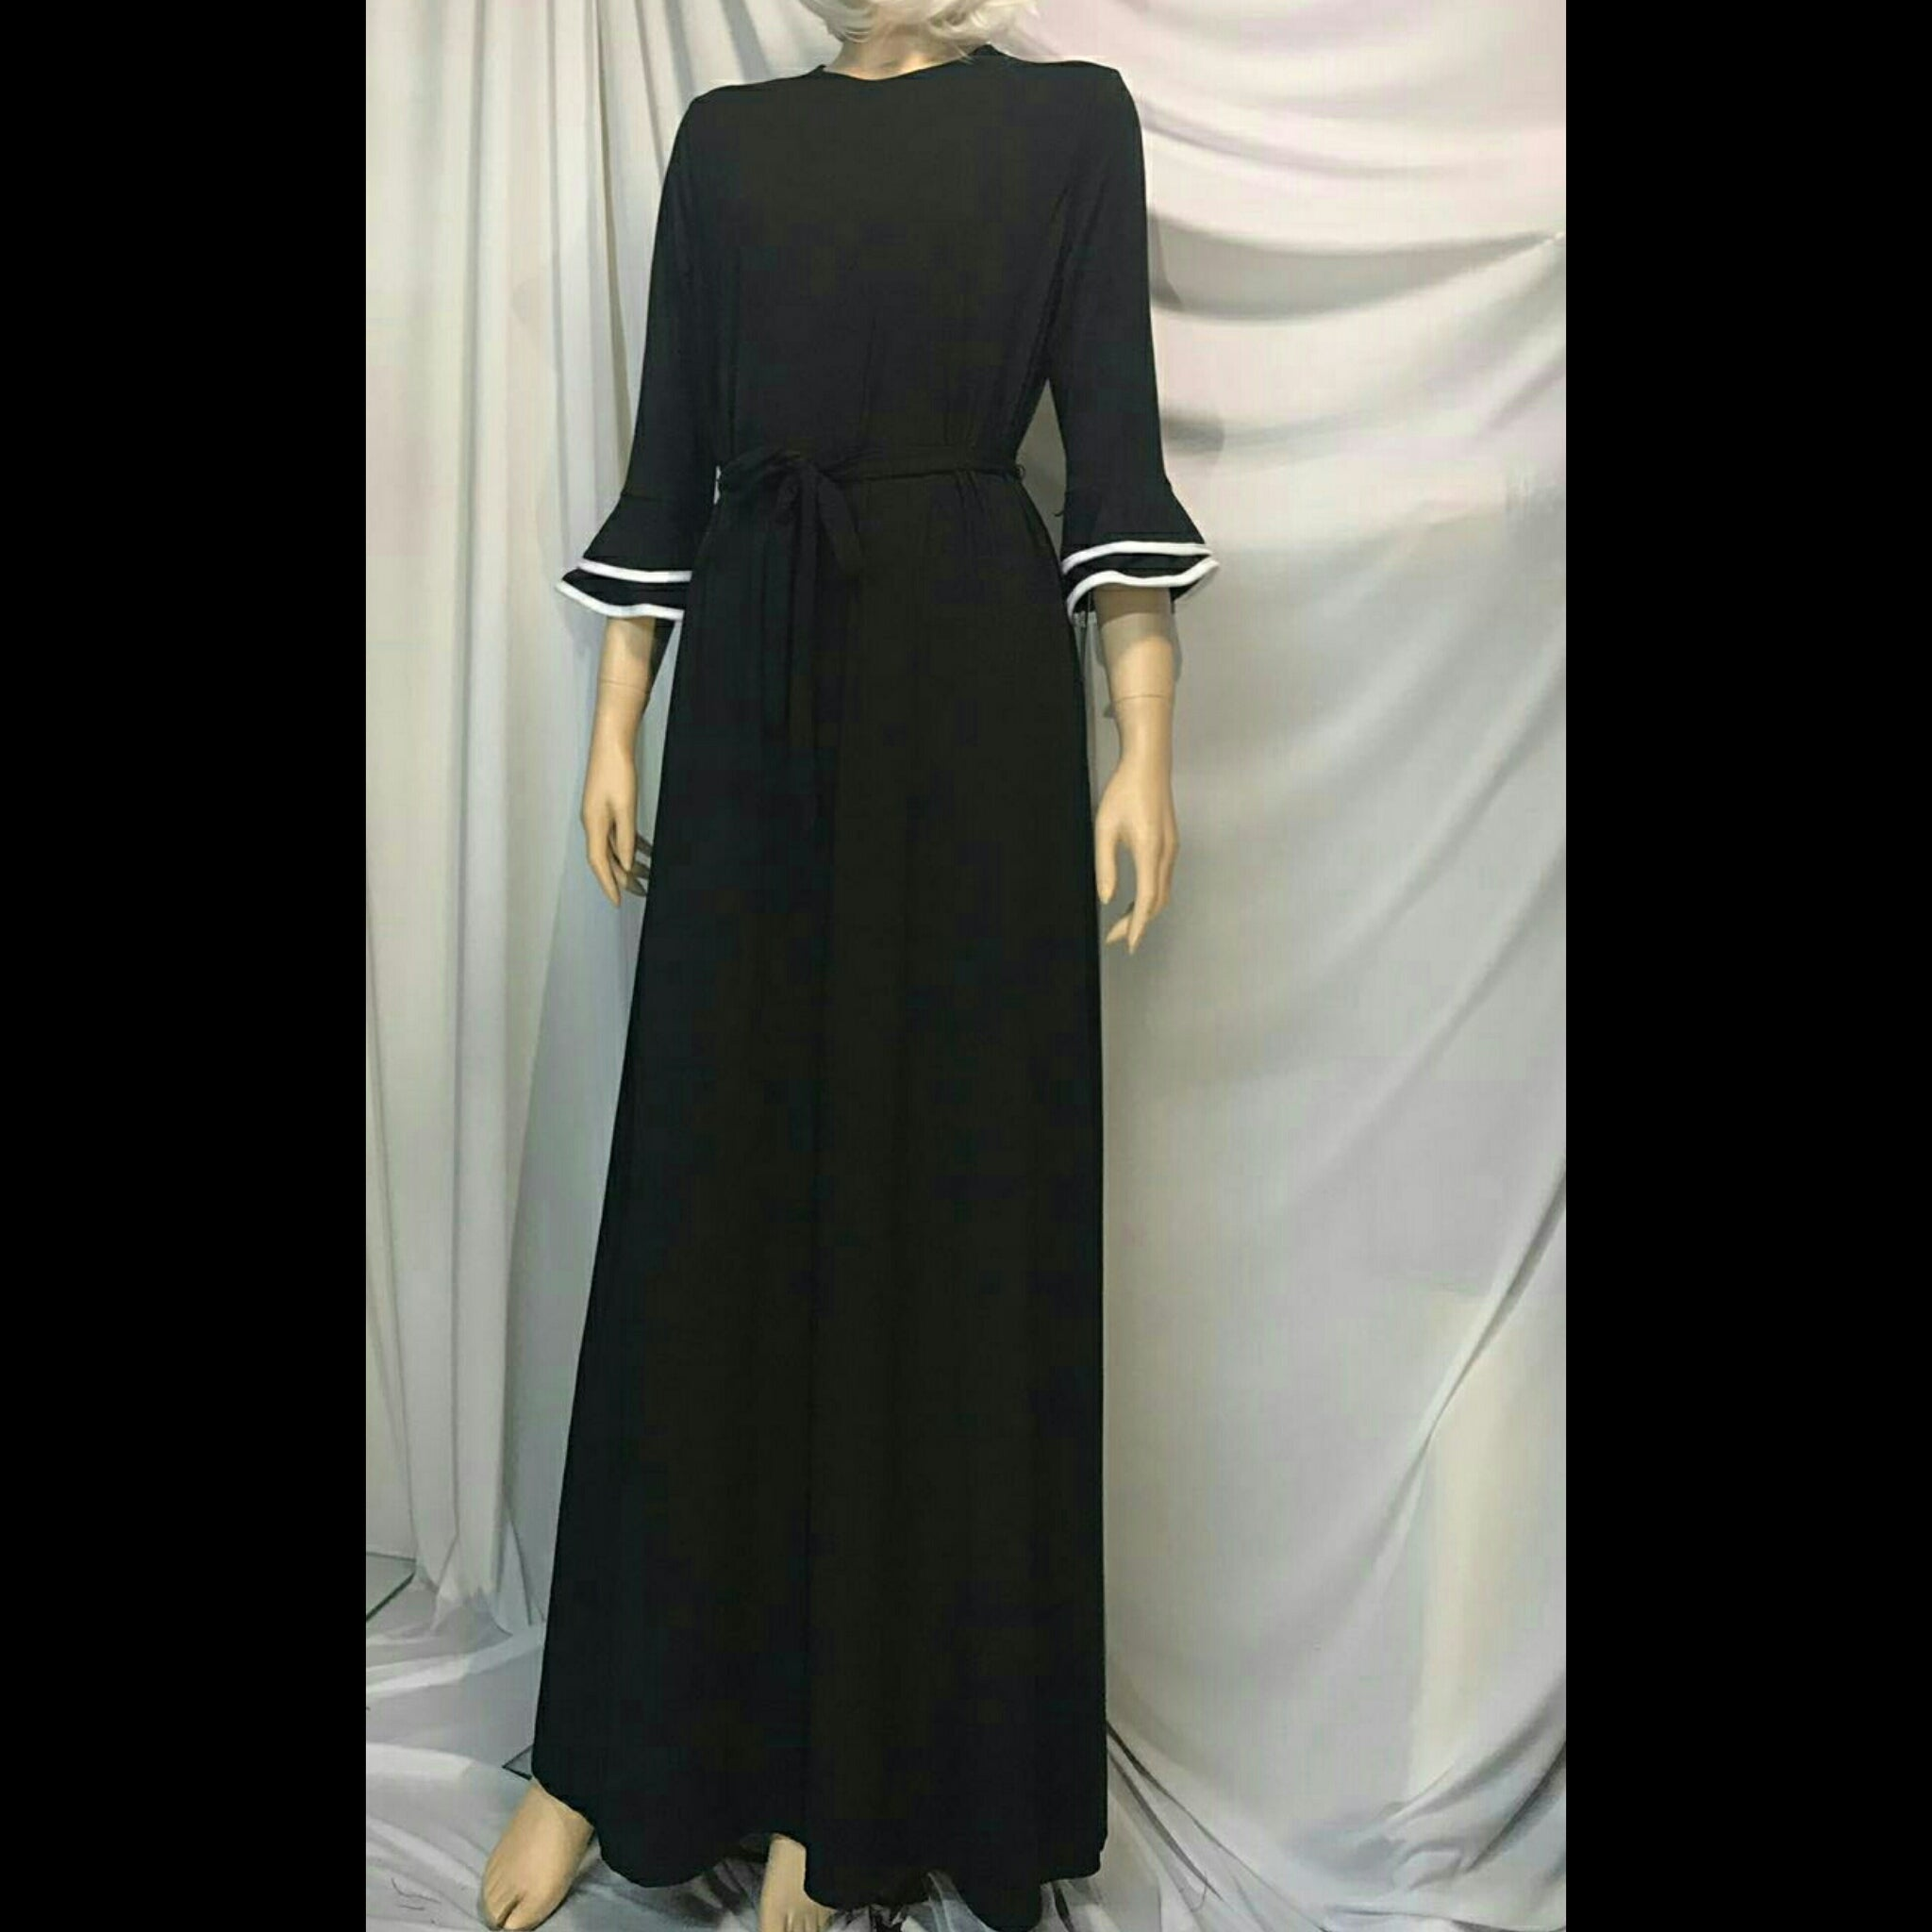 c7b4e121b72 The Mimi Boutique. Simple Black Ruffle Sleeve Maxi Dress. Tap to expand